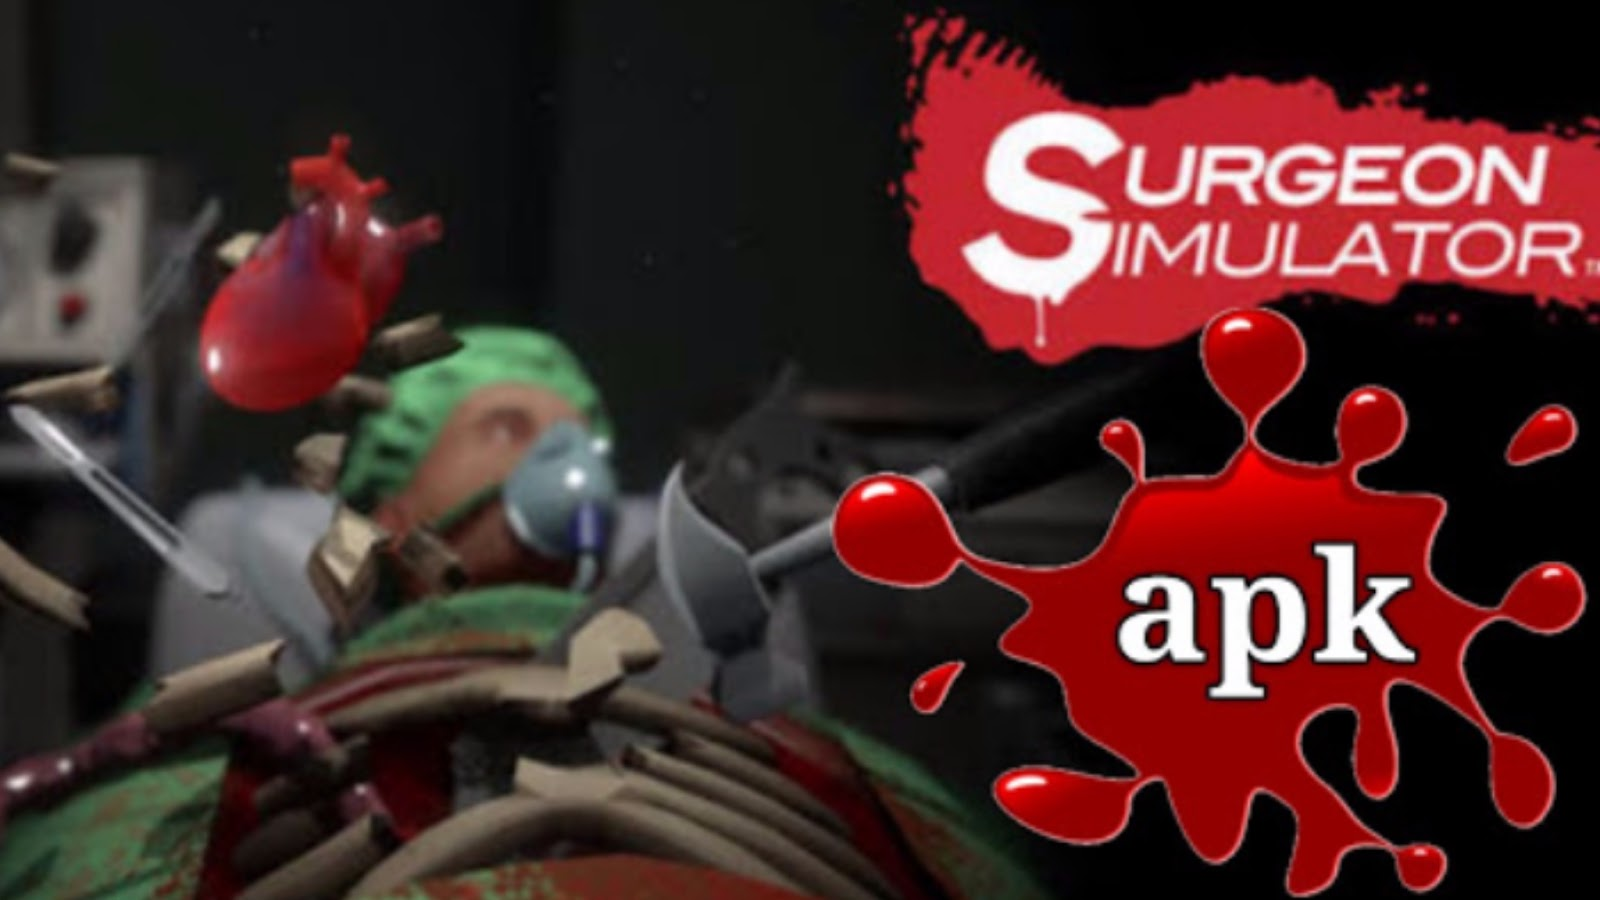 Surgeon Simulator APK